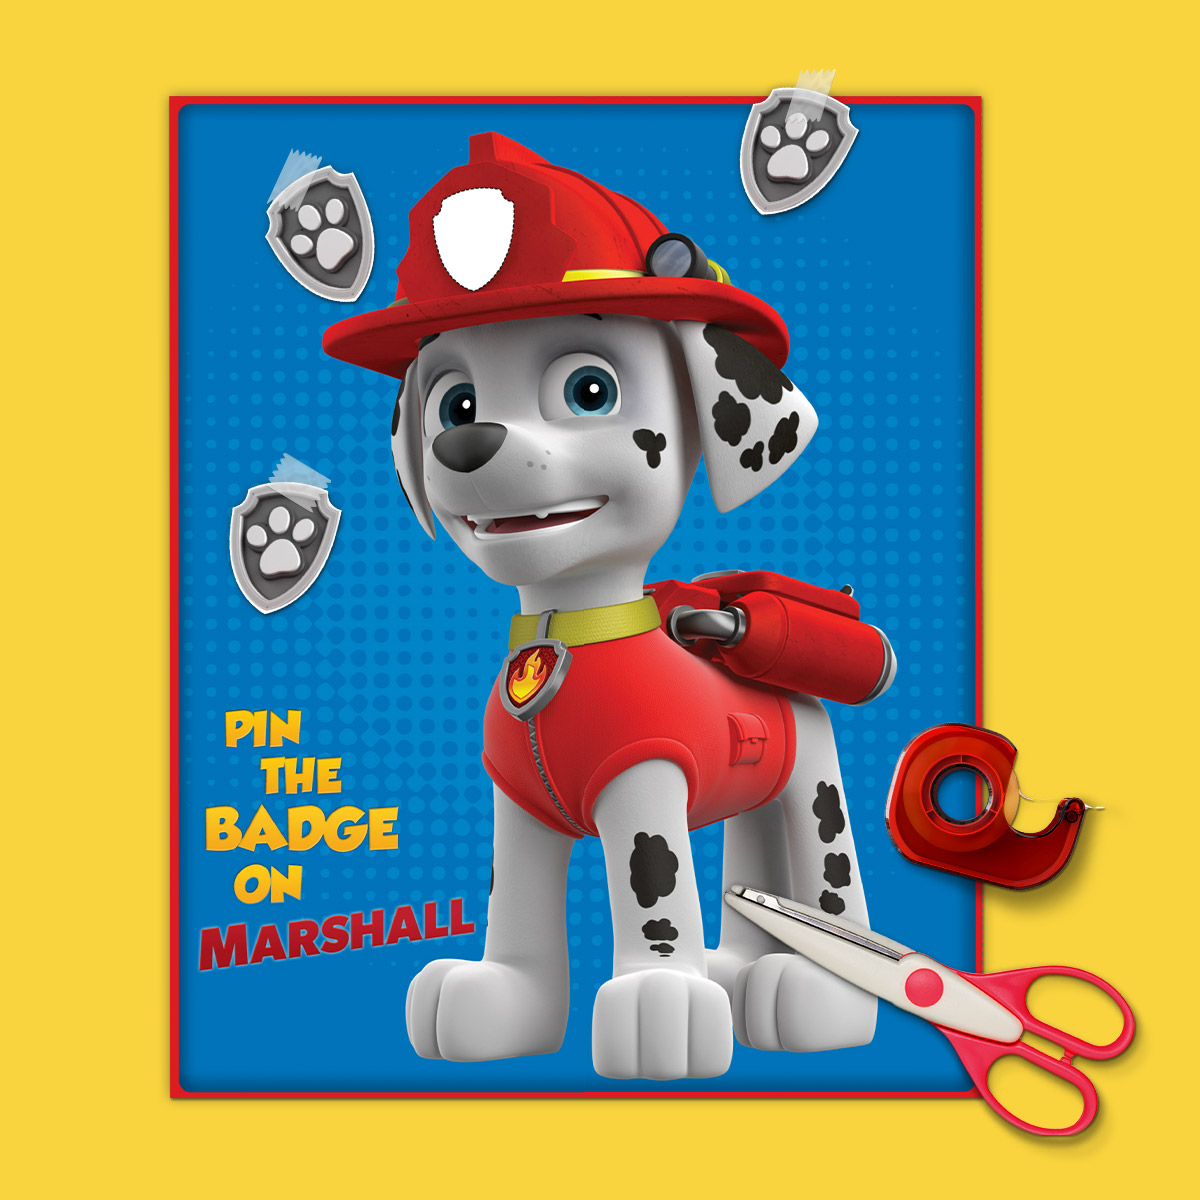 21 Paw Patrol Birthday Party Ideas - Pin The Badge On Marshall Party Game